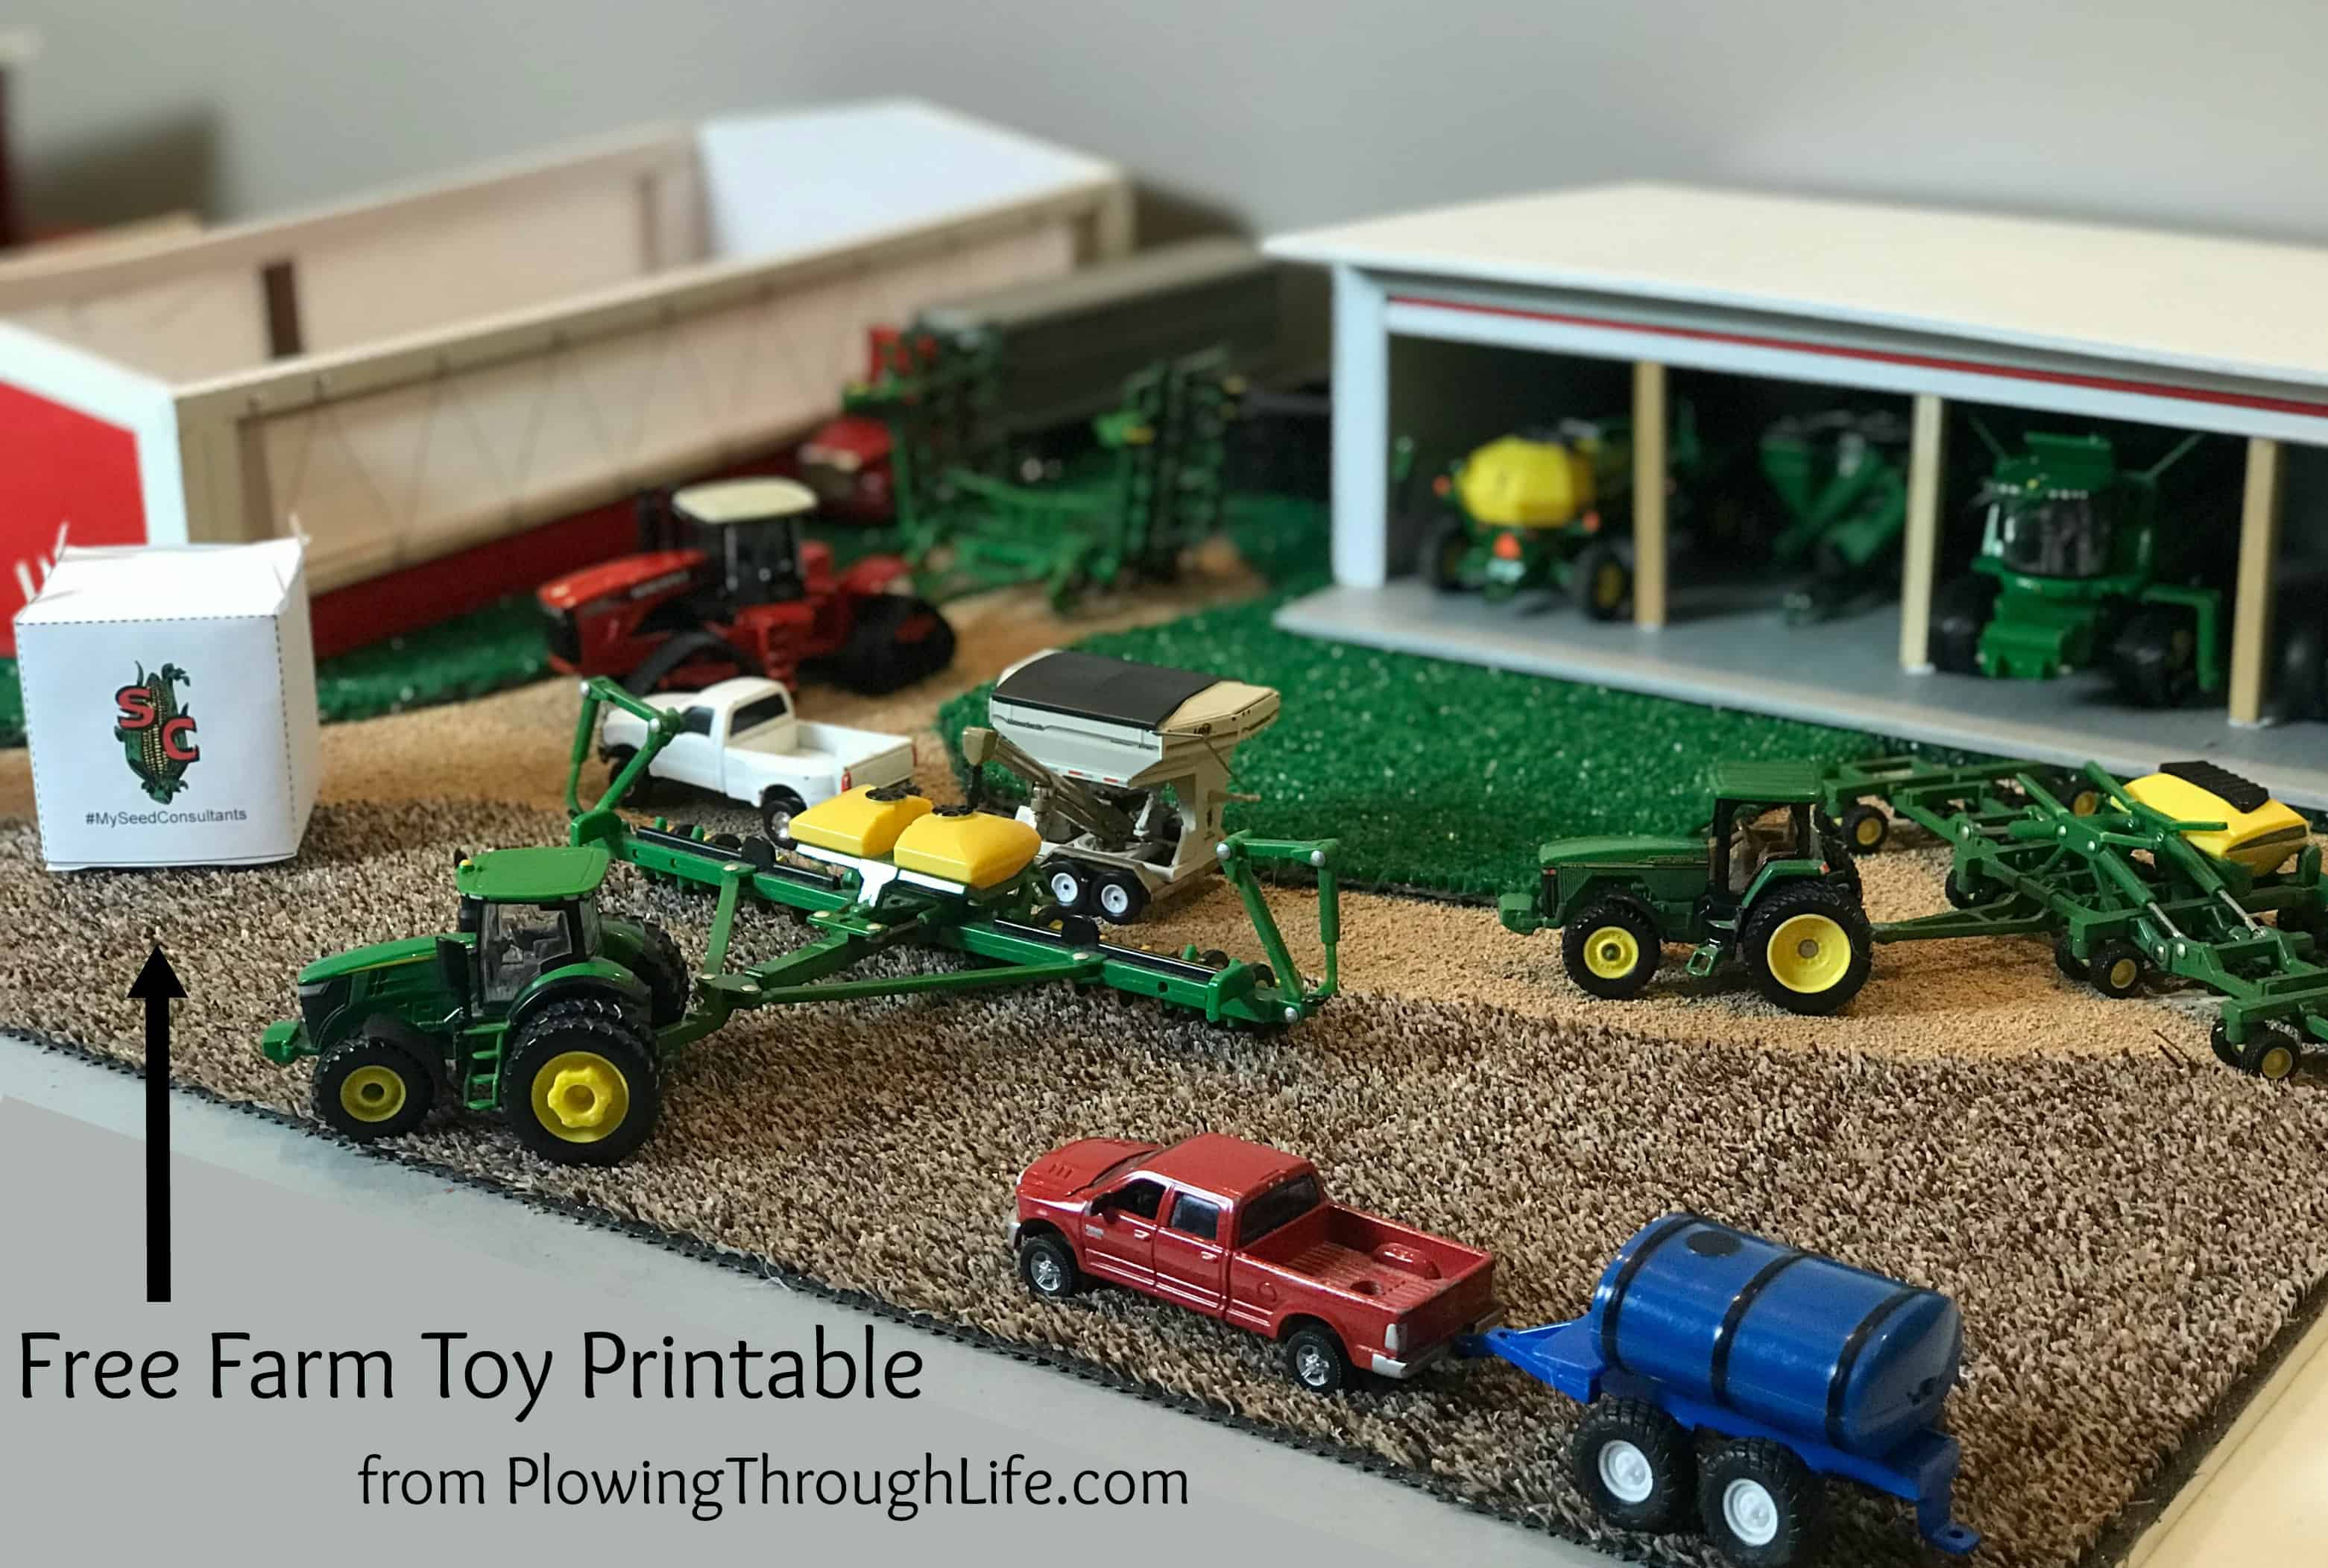 free Seed Consultants farm toy scene printable seed sack along with several John Deere 1/64th scale farm toys